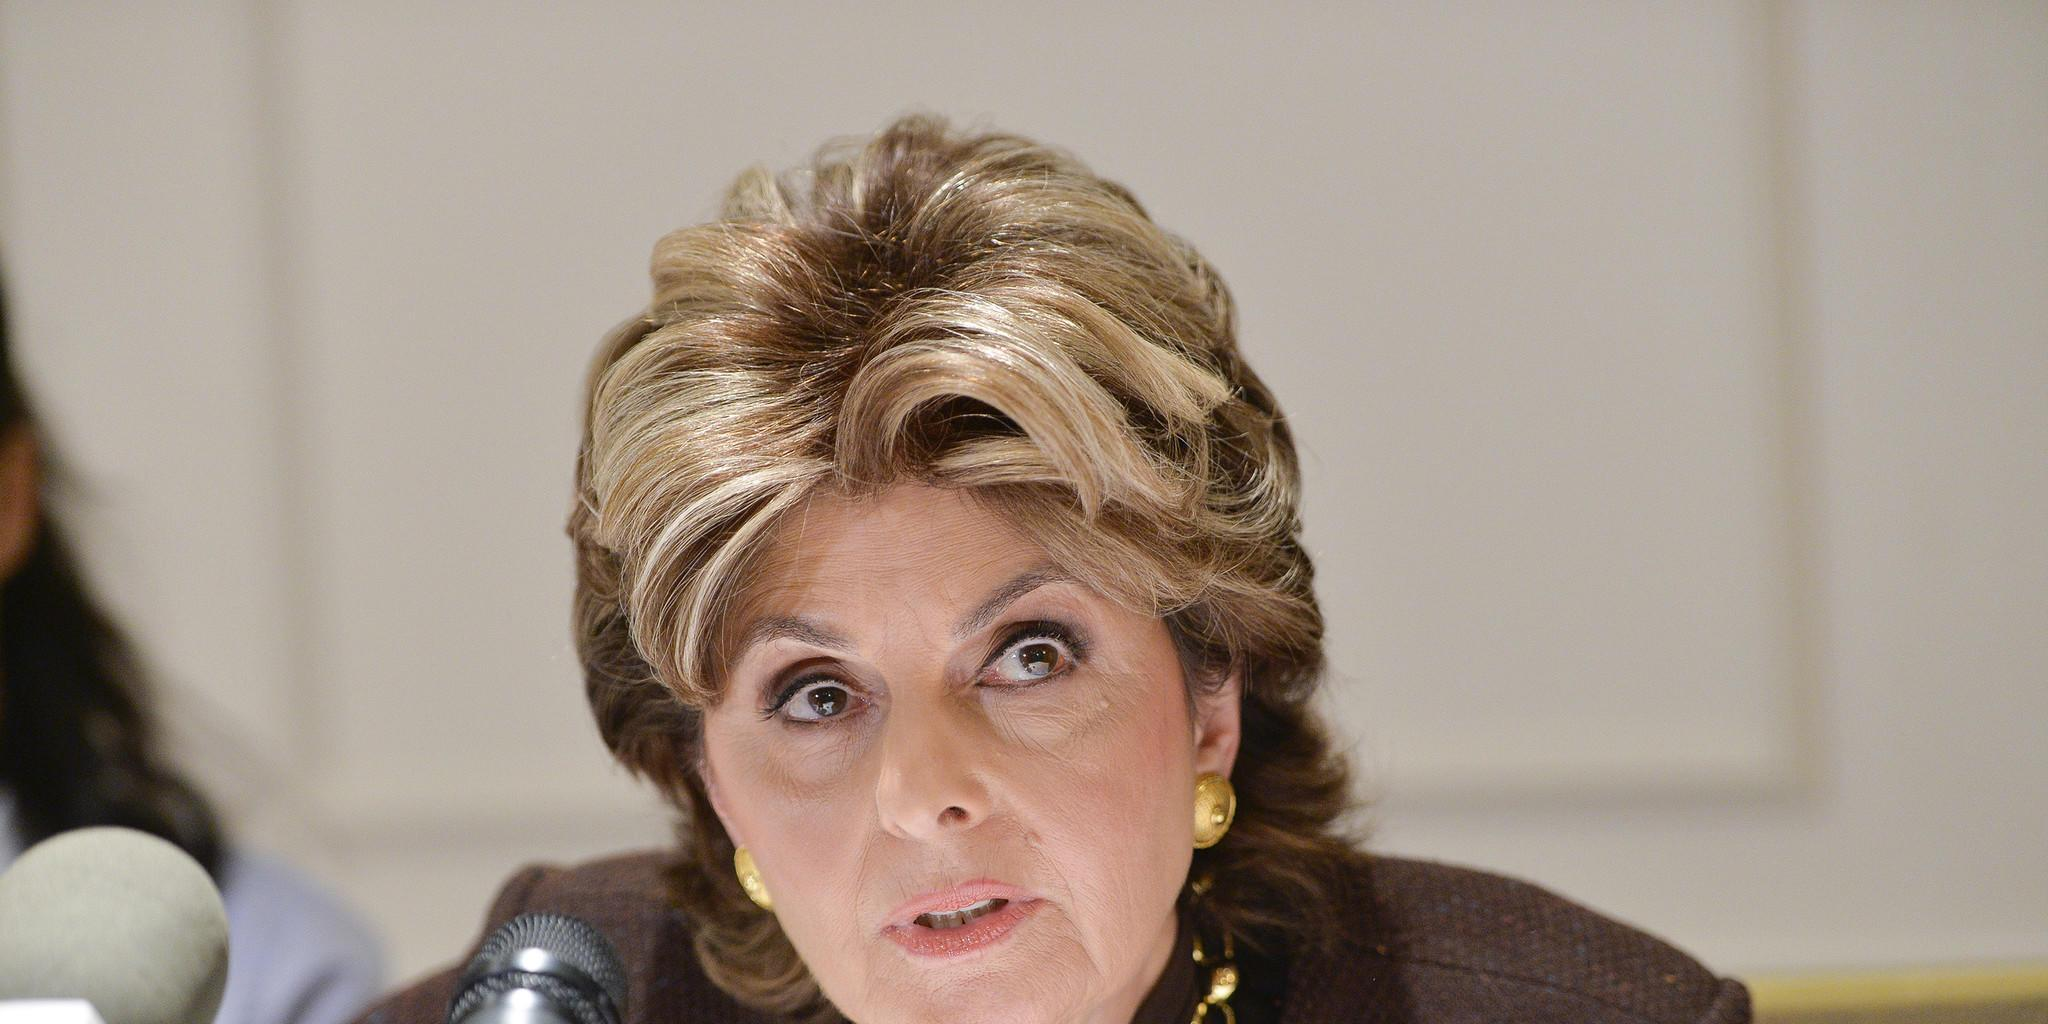 Gloria Allred Slams Mississippi Governor Candidates Refusing To Meet With Women Reporters Alone -'It's Insulting!'